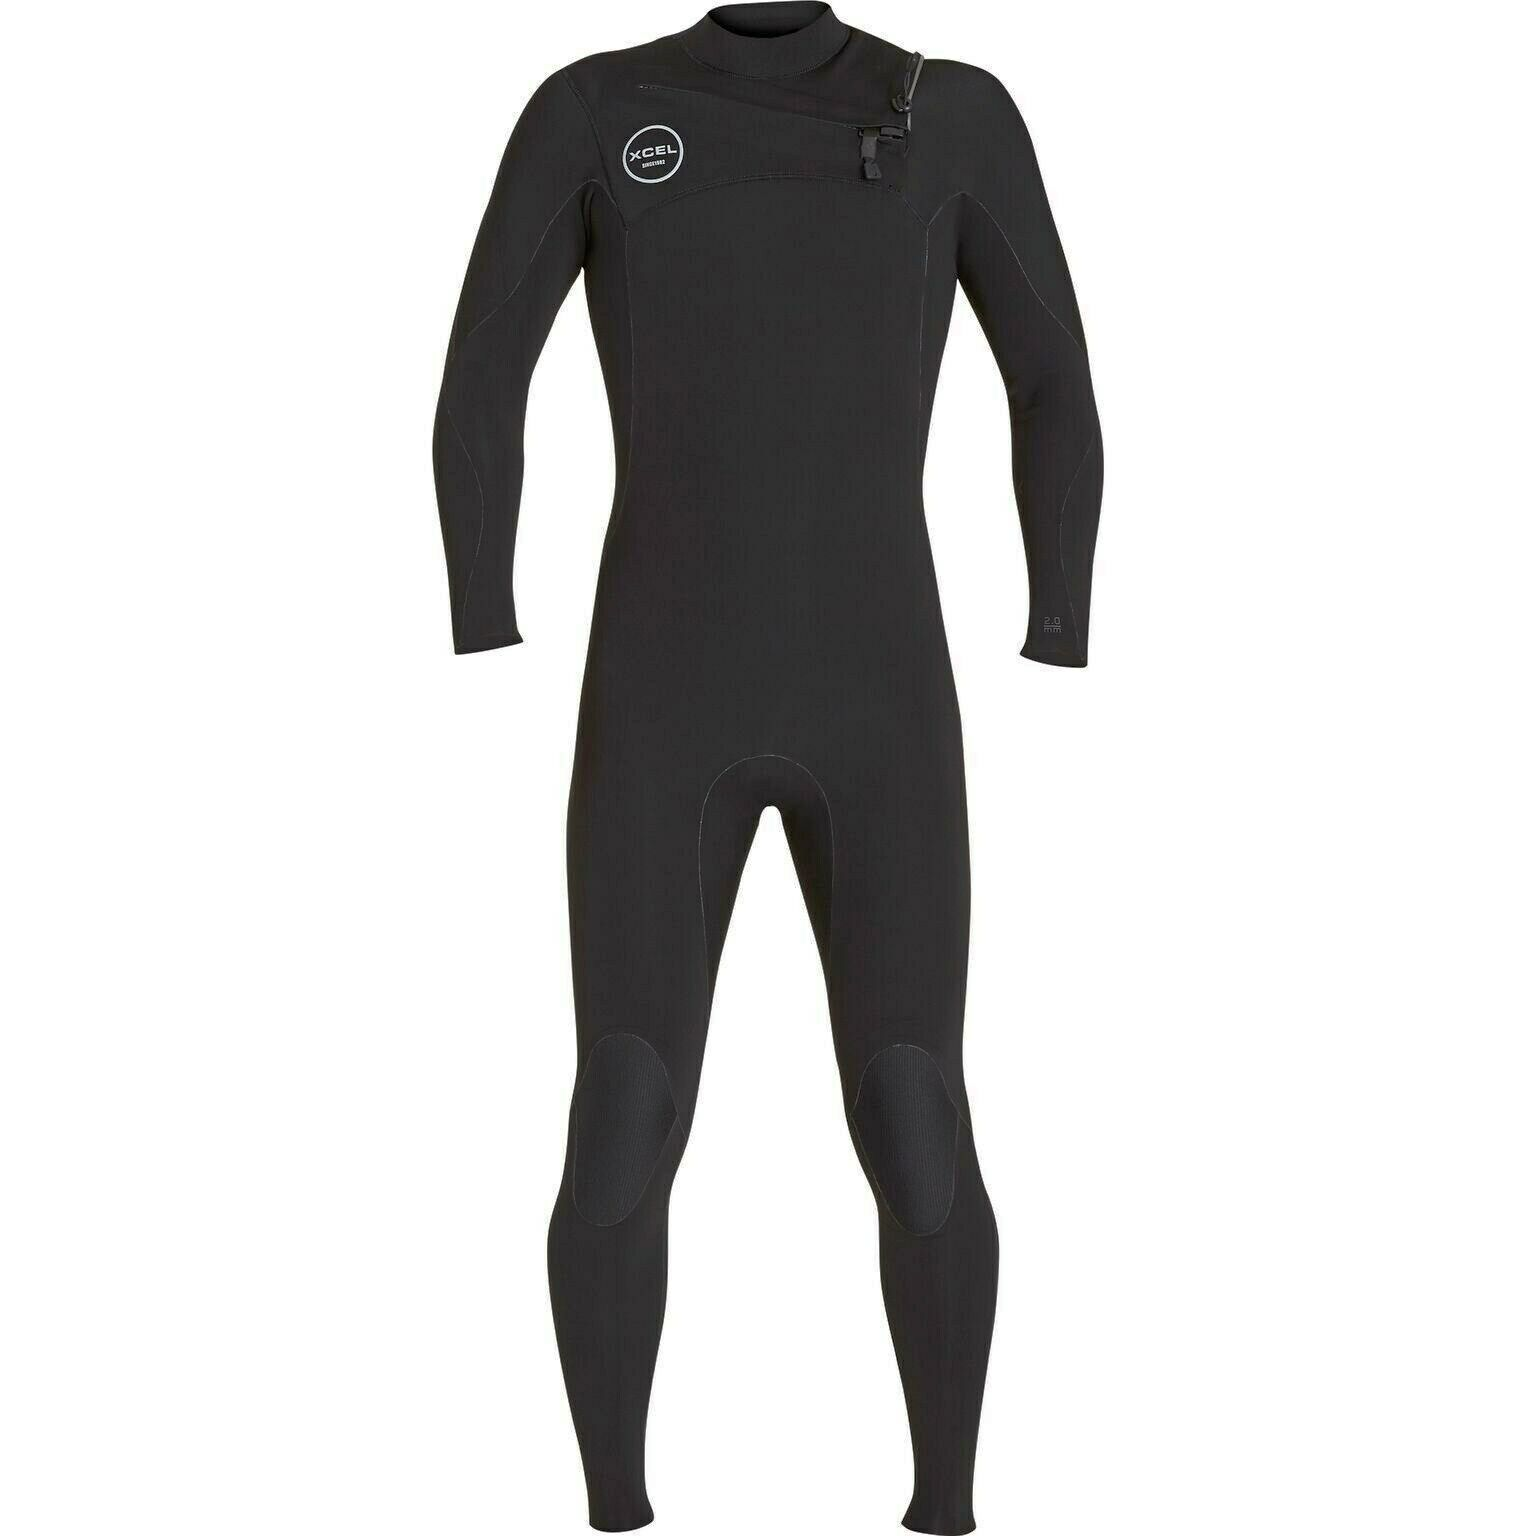 XCEL Men's 2mm COMP X TDC  CZ Wetsuit - BSL - Large Tall - NWT  save 60% discount and fast shipping worldwide